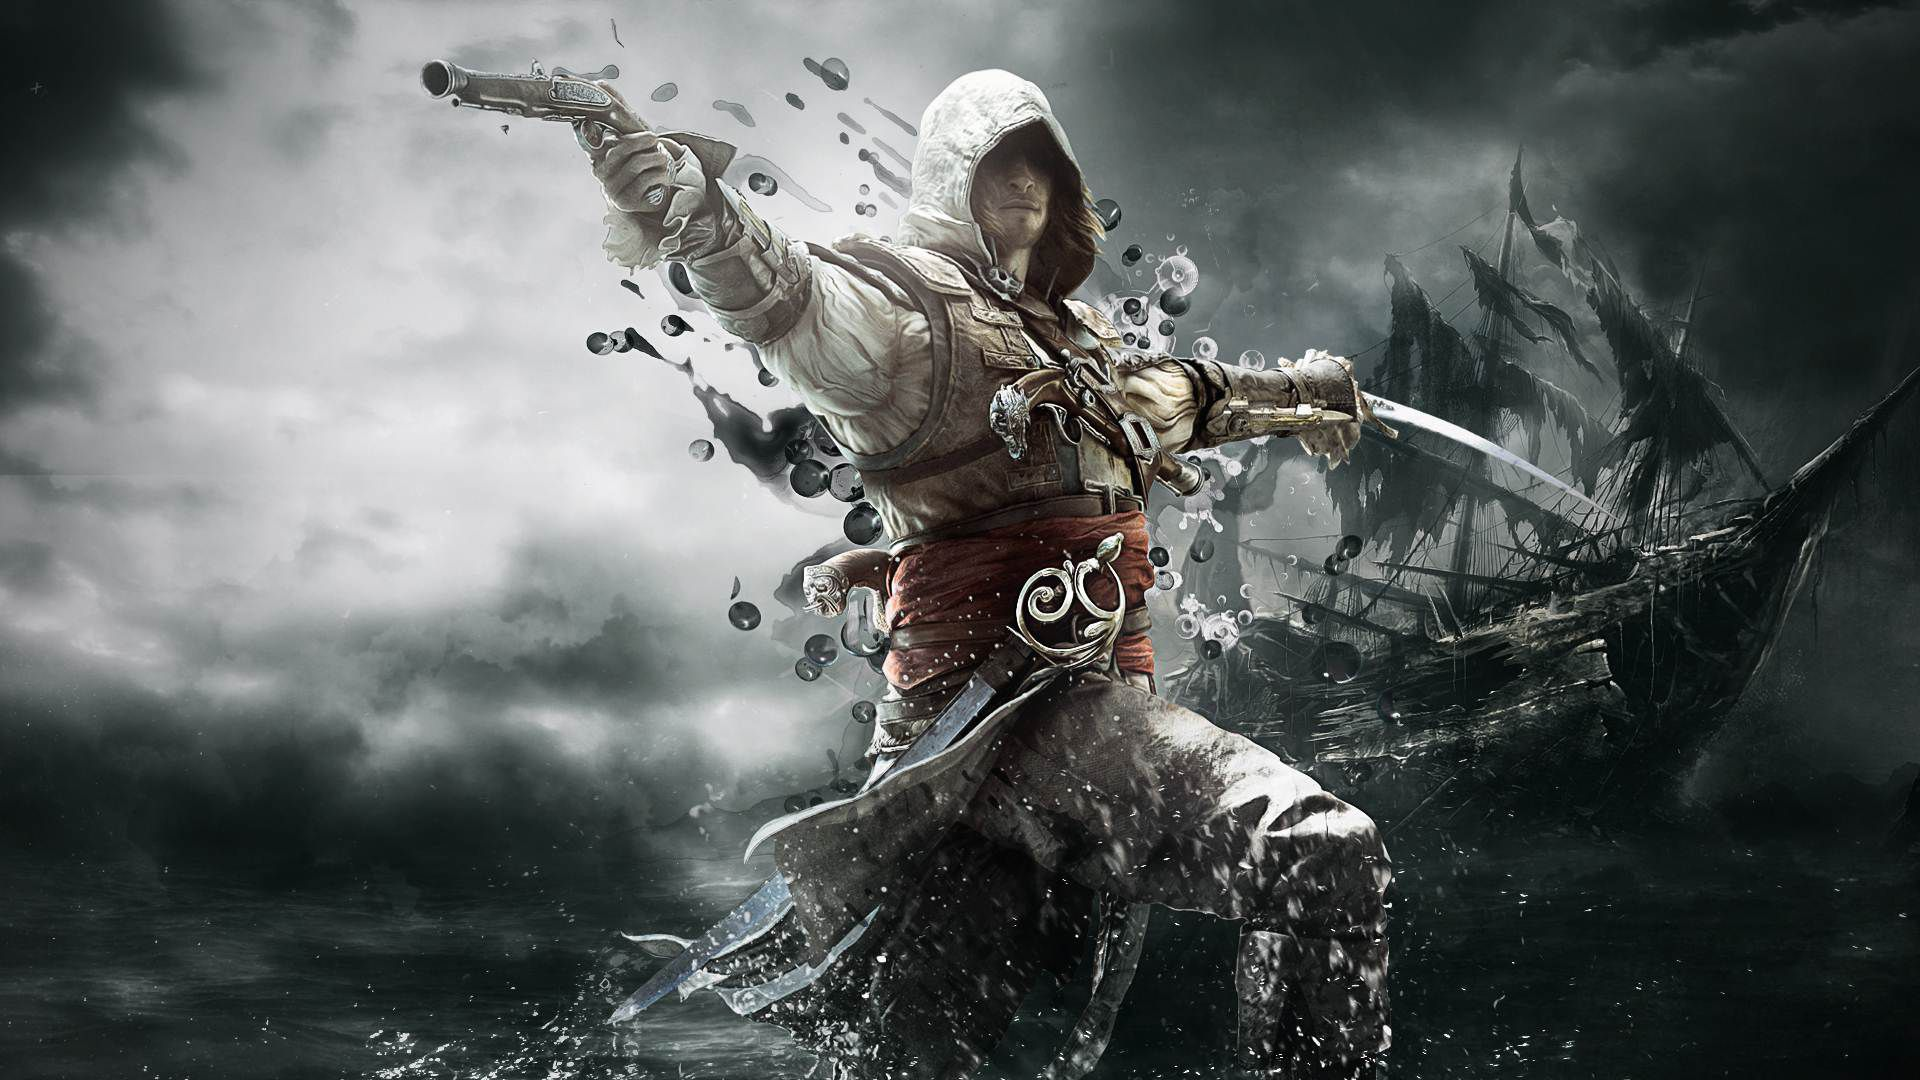 So funktioniert der DualShock 4 in Assassin's Creed 4 Black Flag